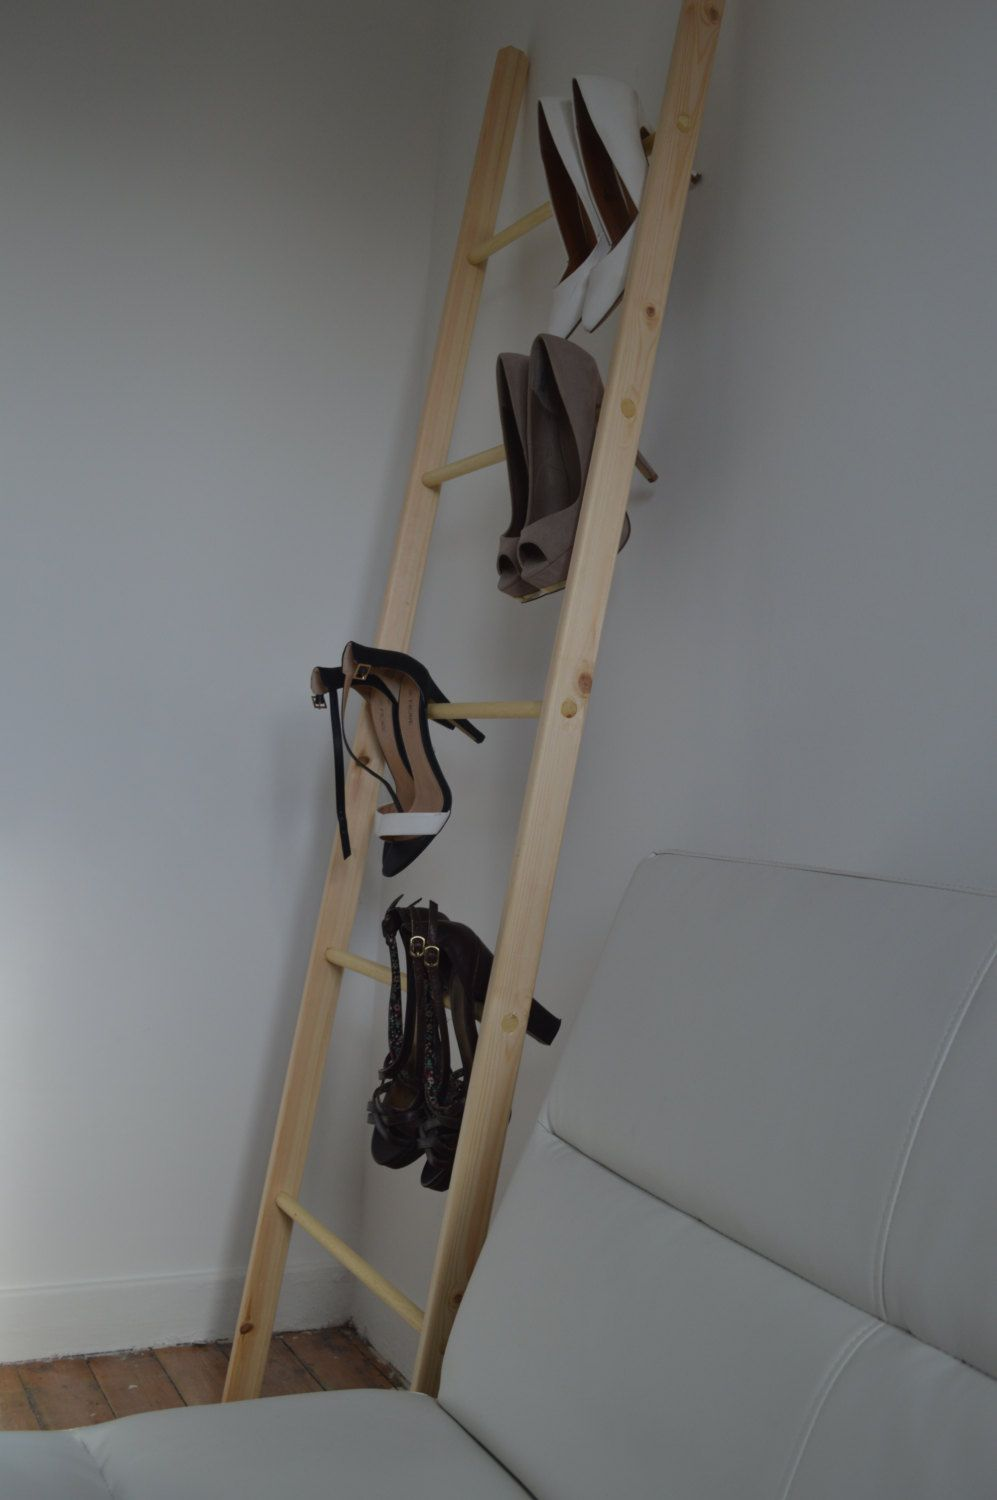 Straight Thin Decorative Wooden Ladder from Pine Wood